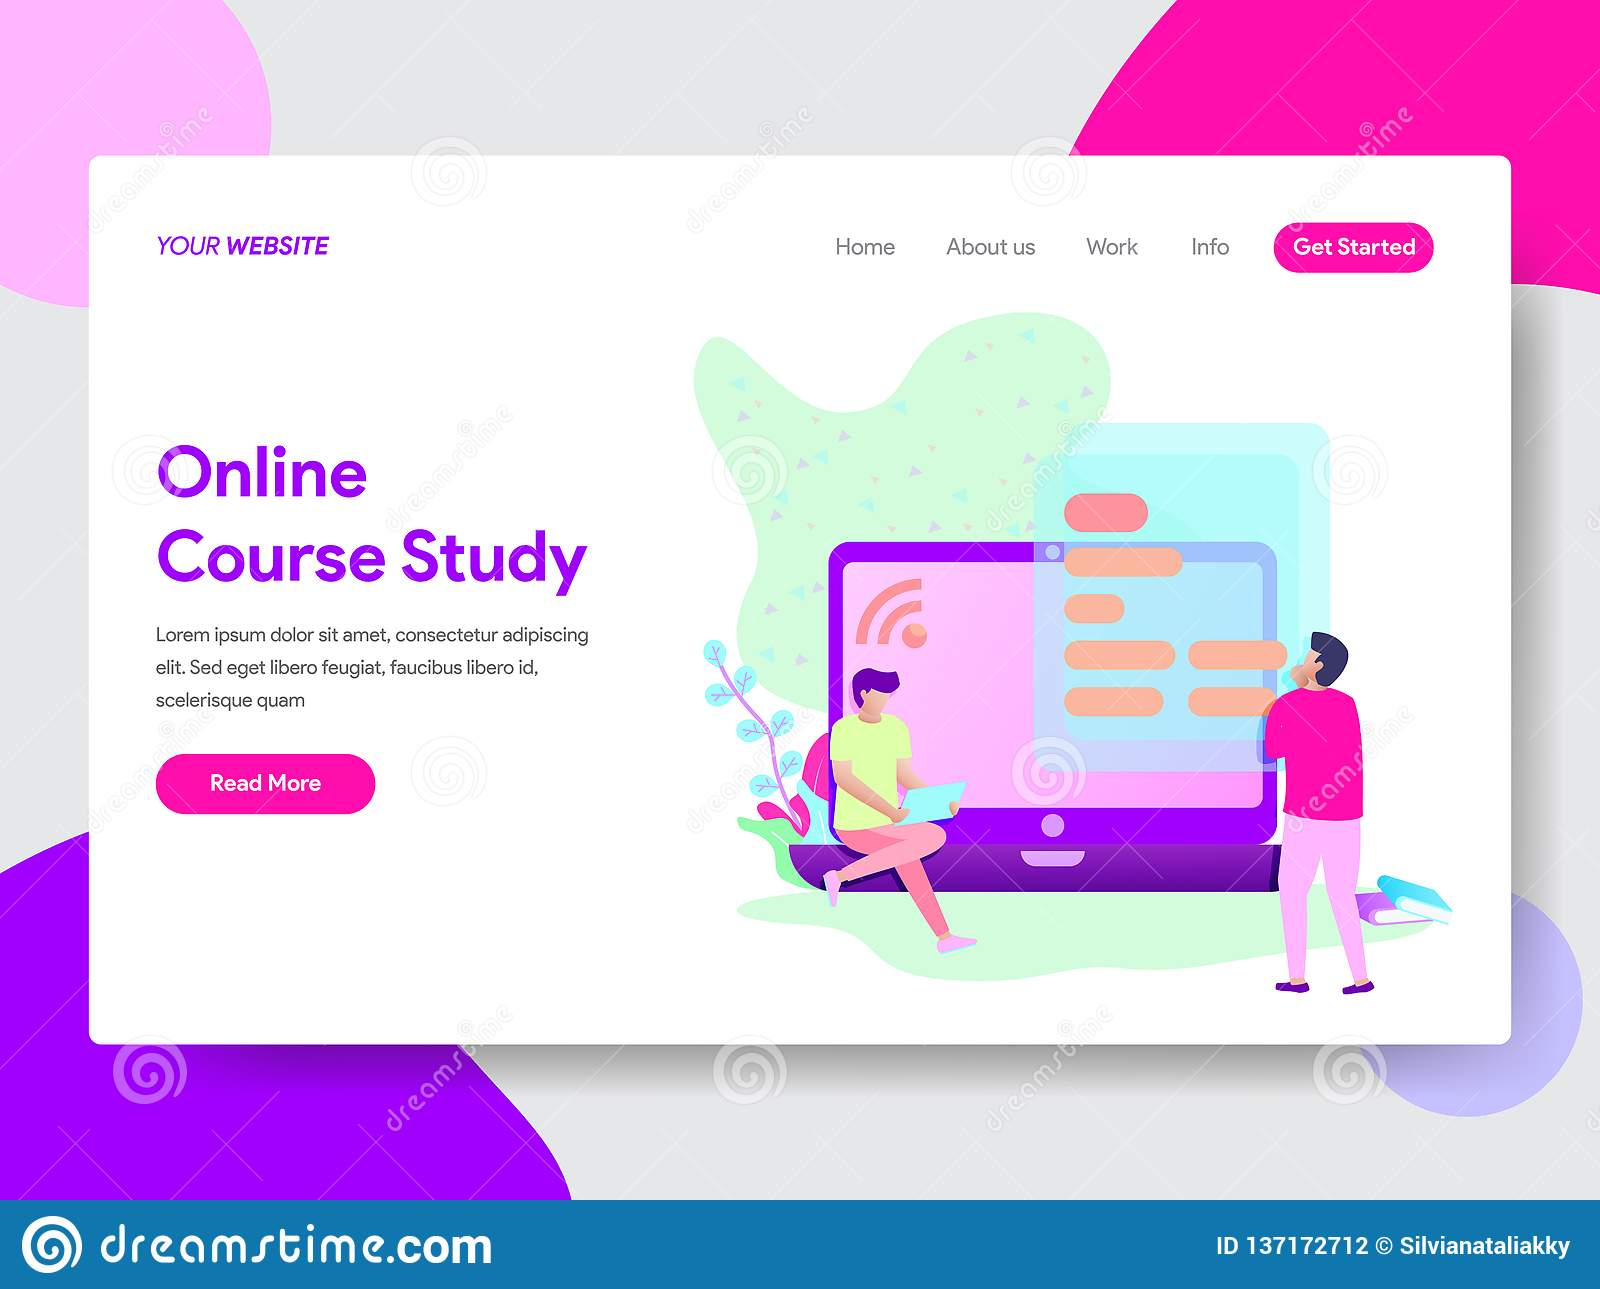 Landing page template of Online Course Student Illustration Concept. Modern flat design concept of web page design